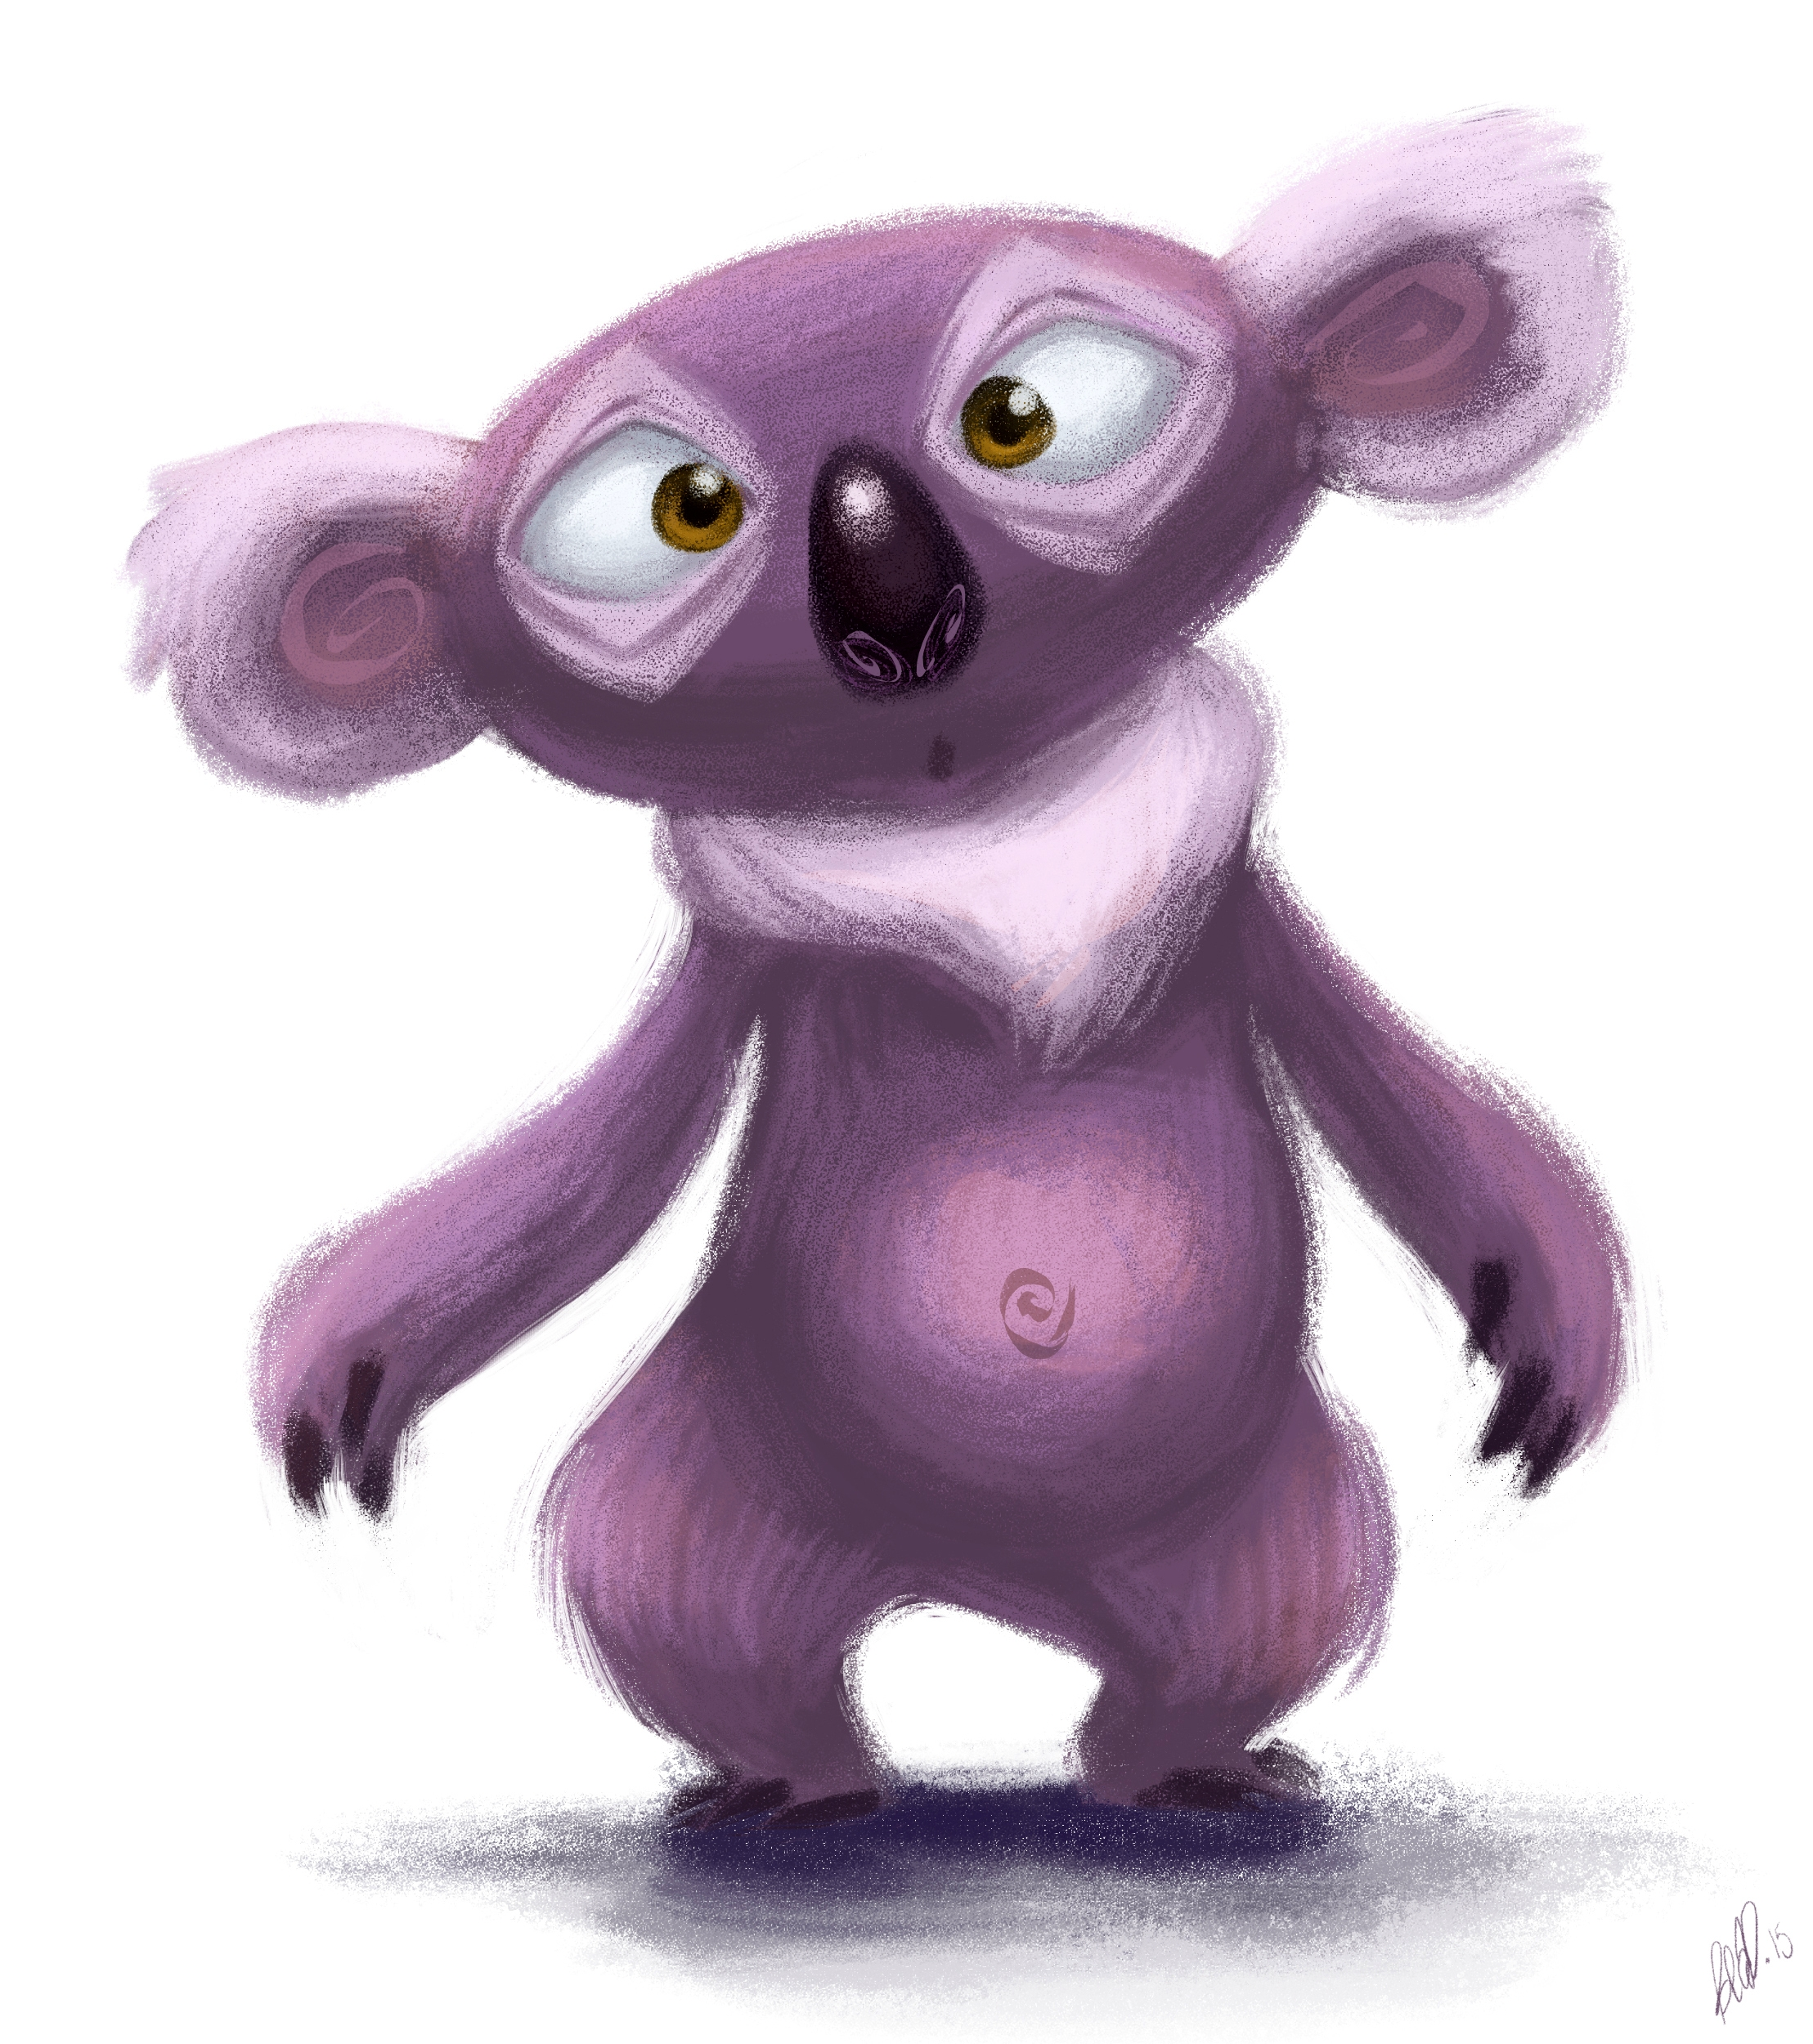 Melvin koala - animals, sketch, digitalart - beasketches | ello